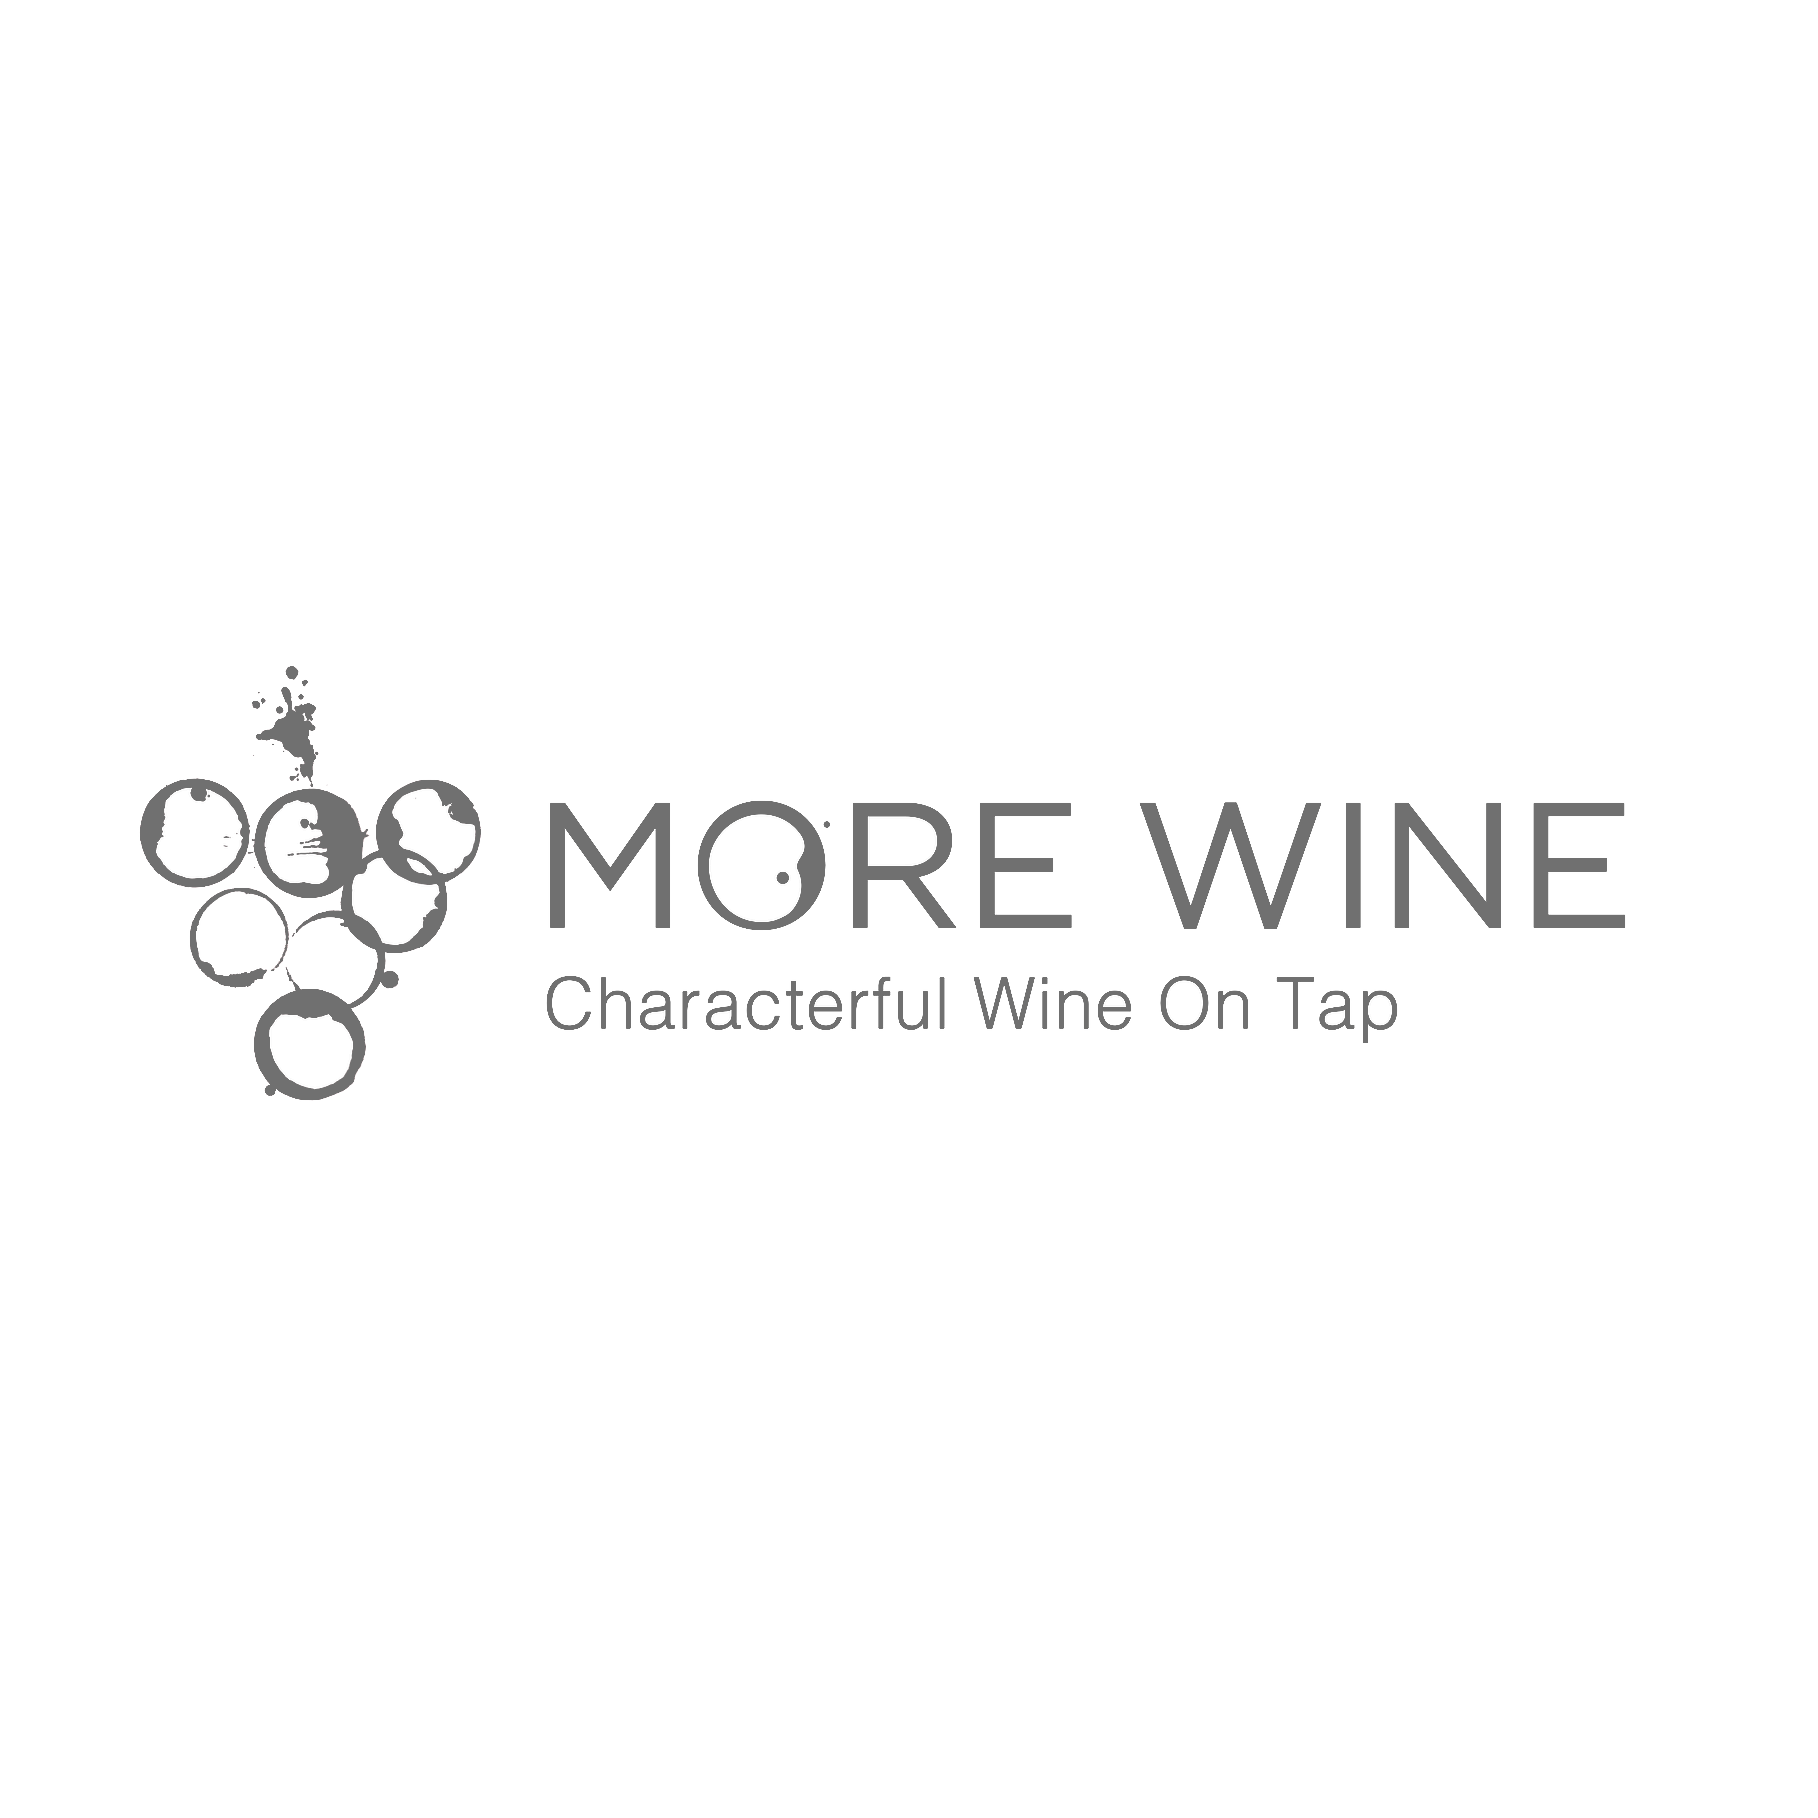 more wine logo copy.png